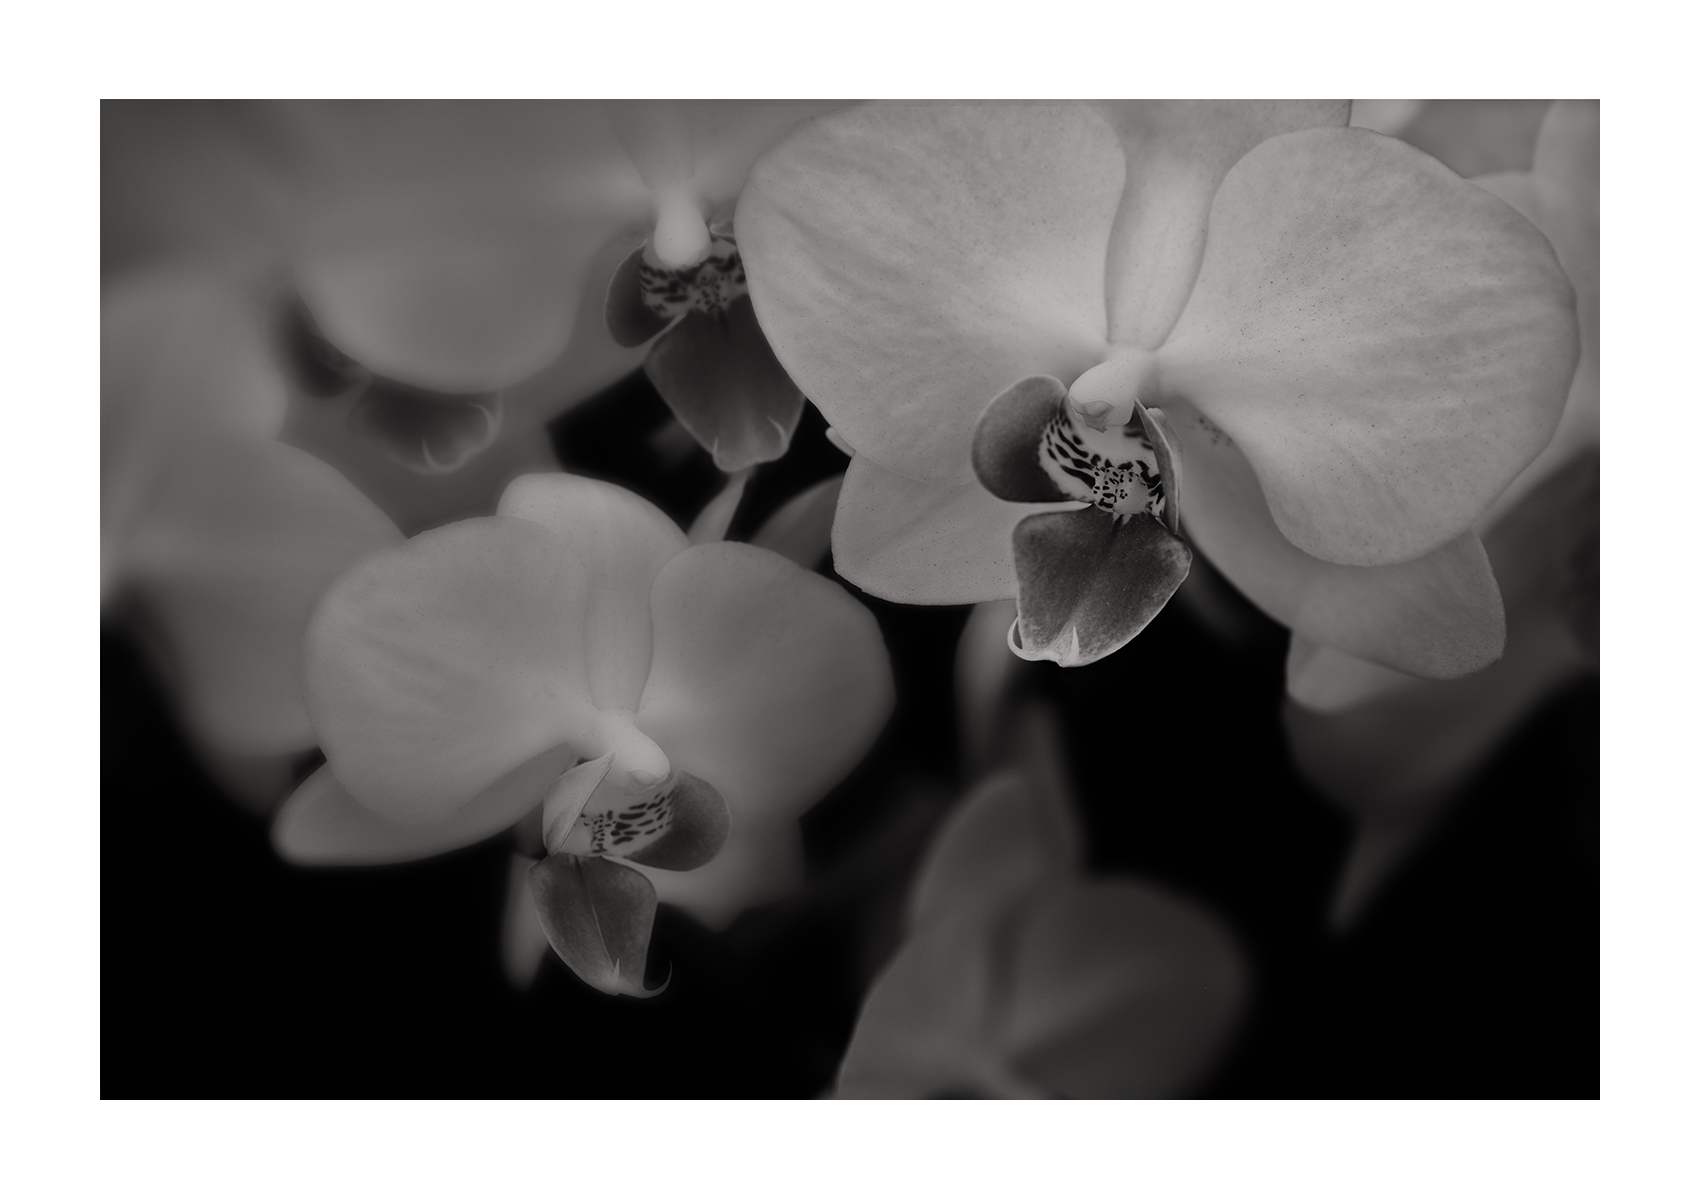 20170221_S_VV_Orchids_0008_ORCHID_WebSRGB_FINAL_V2